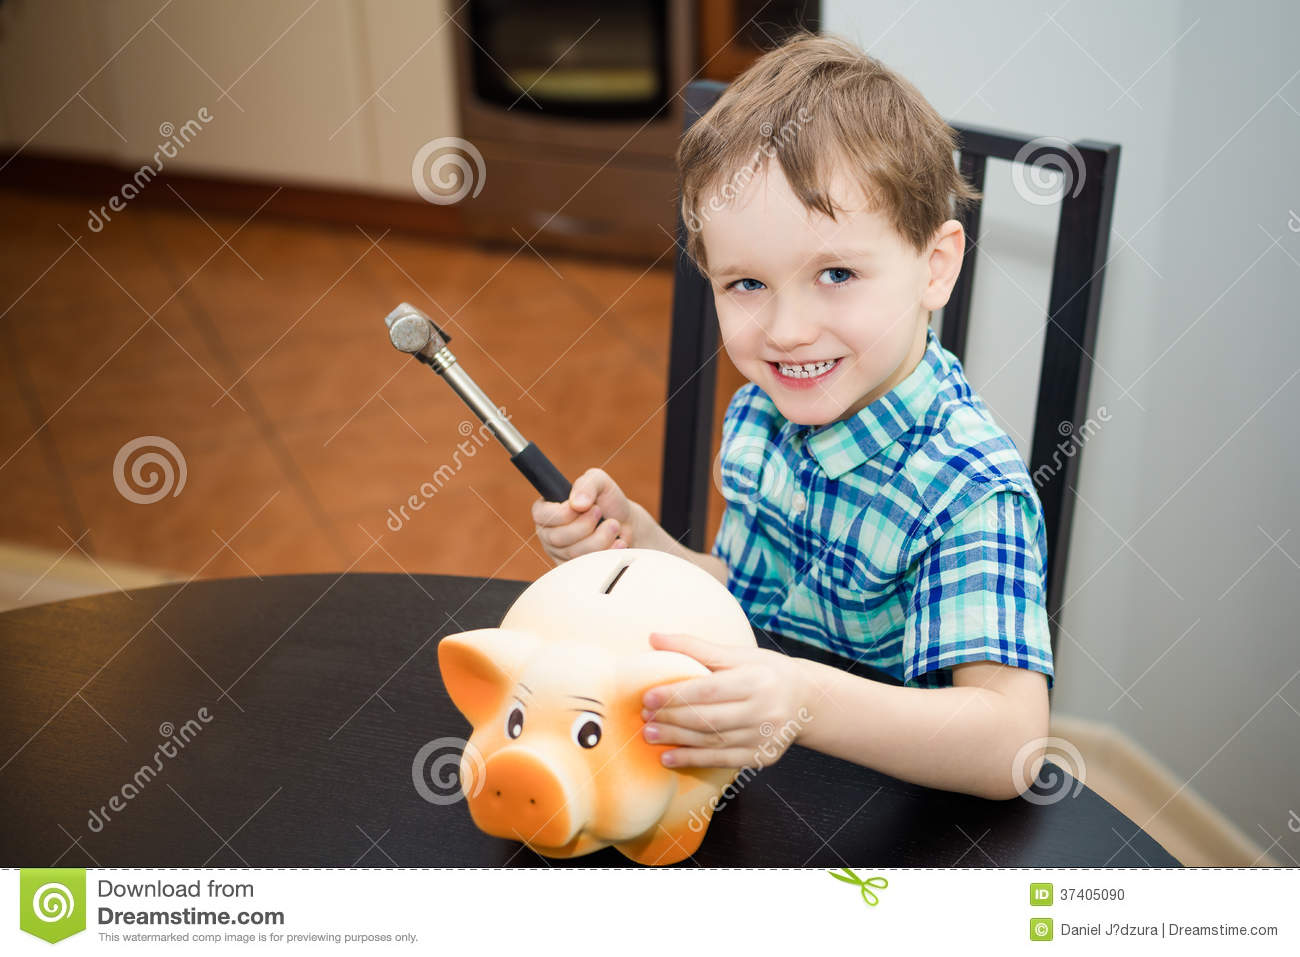 The boy who broke the bank